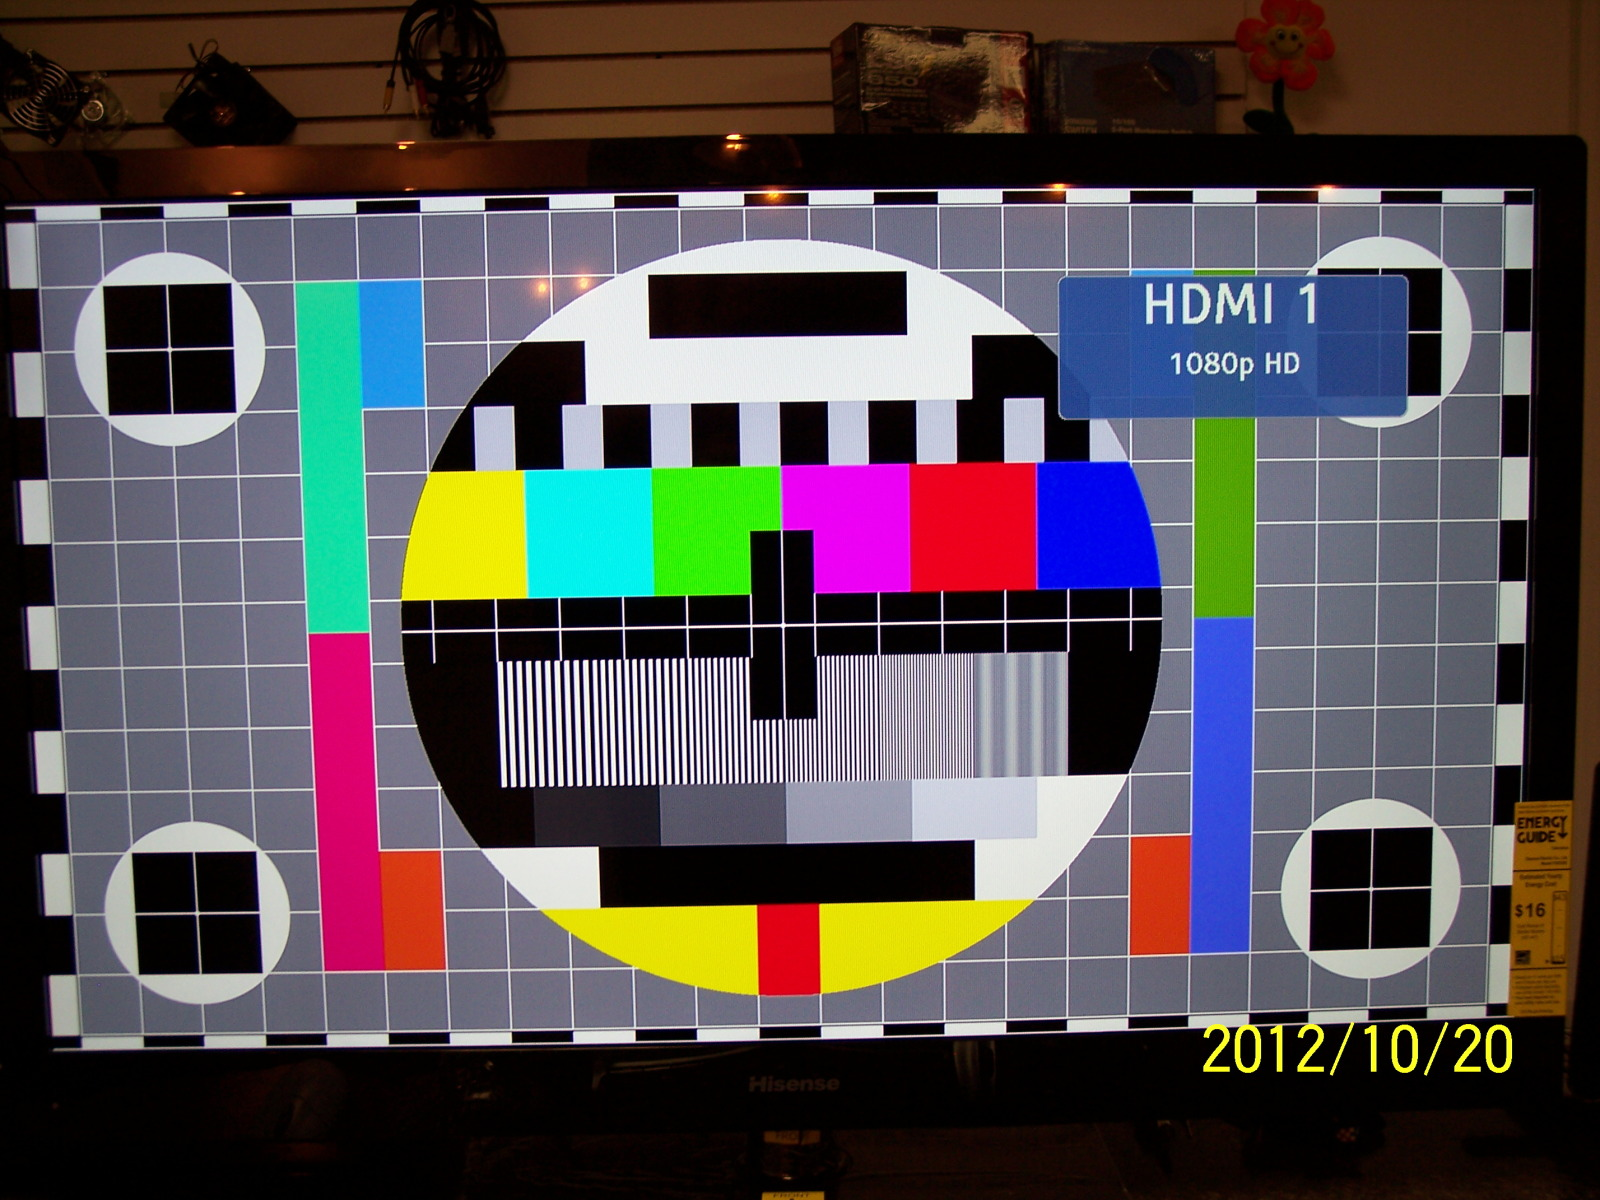 No image on display while cloned with the TV, but with image on TV 35jw7yc.jpg